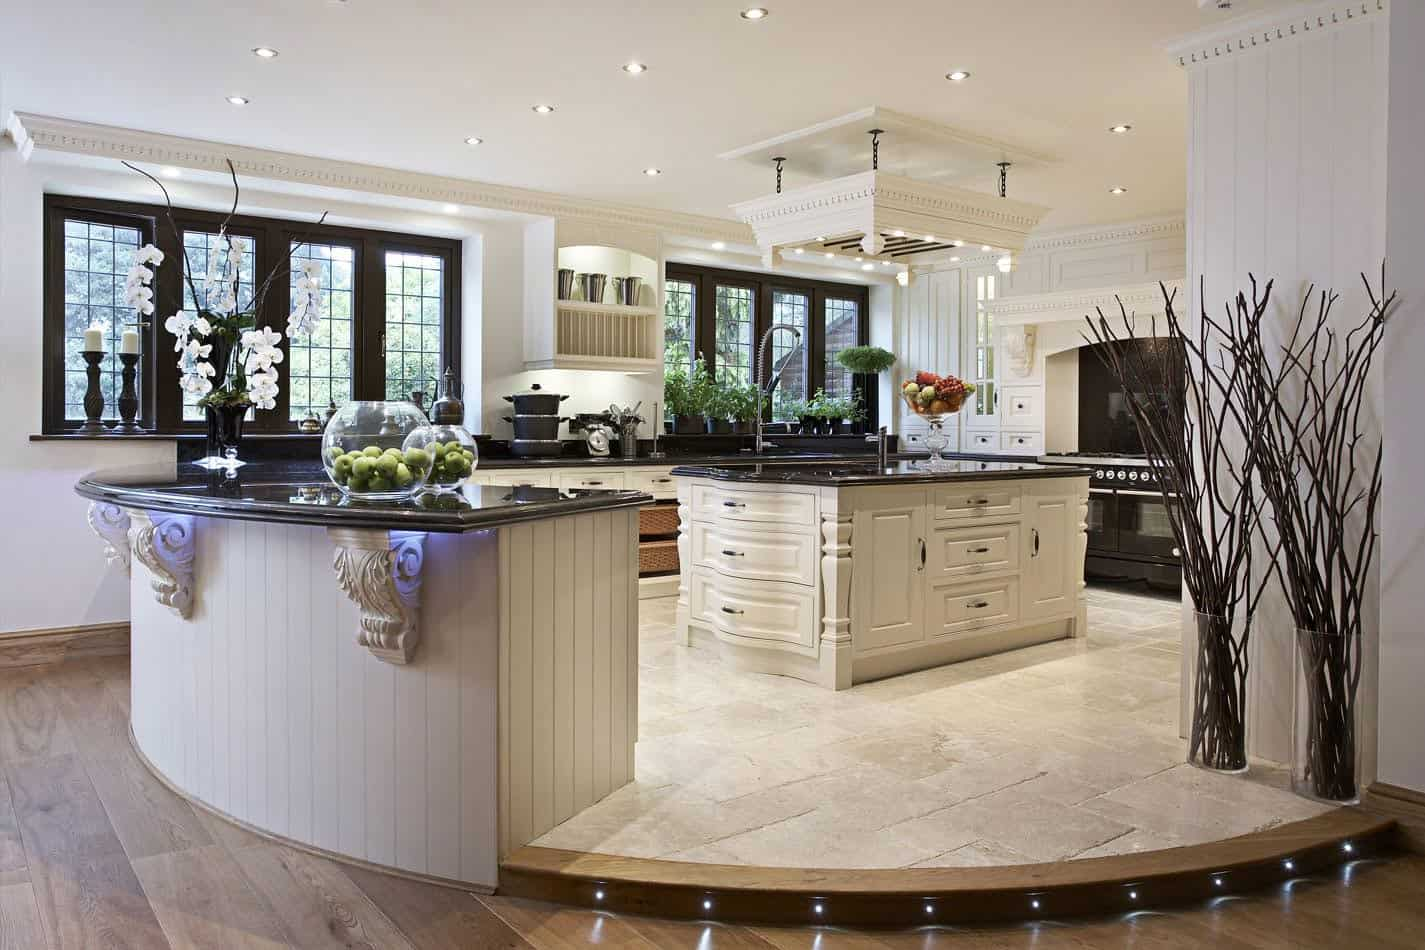 A gorgeous kitchen setup boasting a beautiful design and elegant black countertops lighted by recessed ceiling lights.